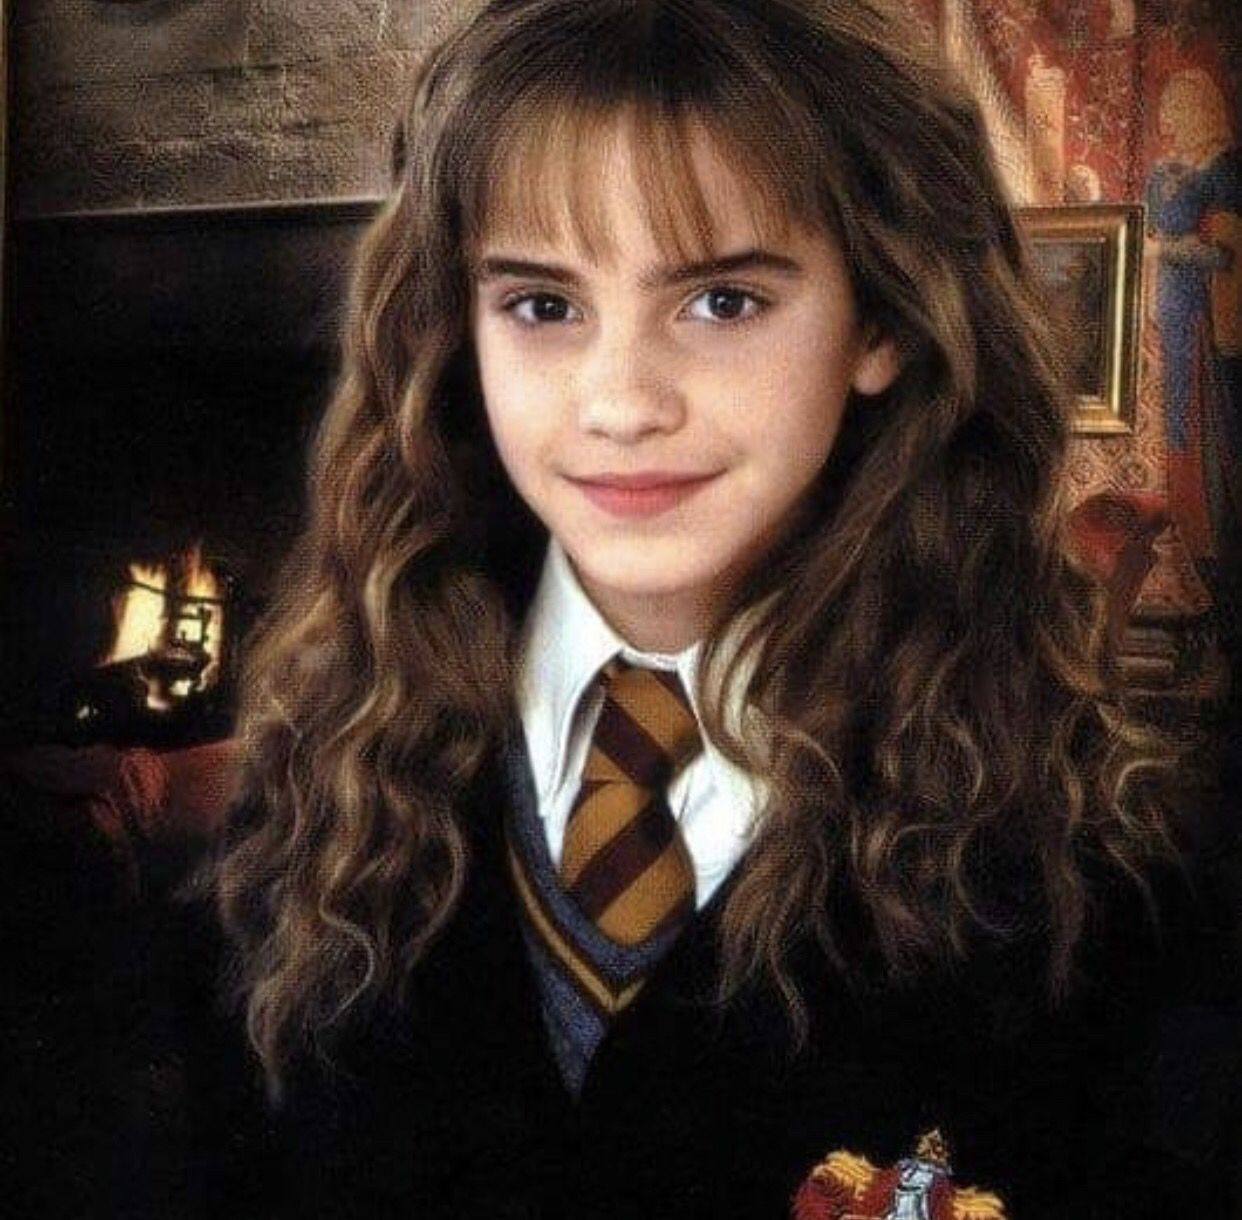 Harry Potter Harry Potter Characters Hermione Granger Hair Hermione Granger